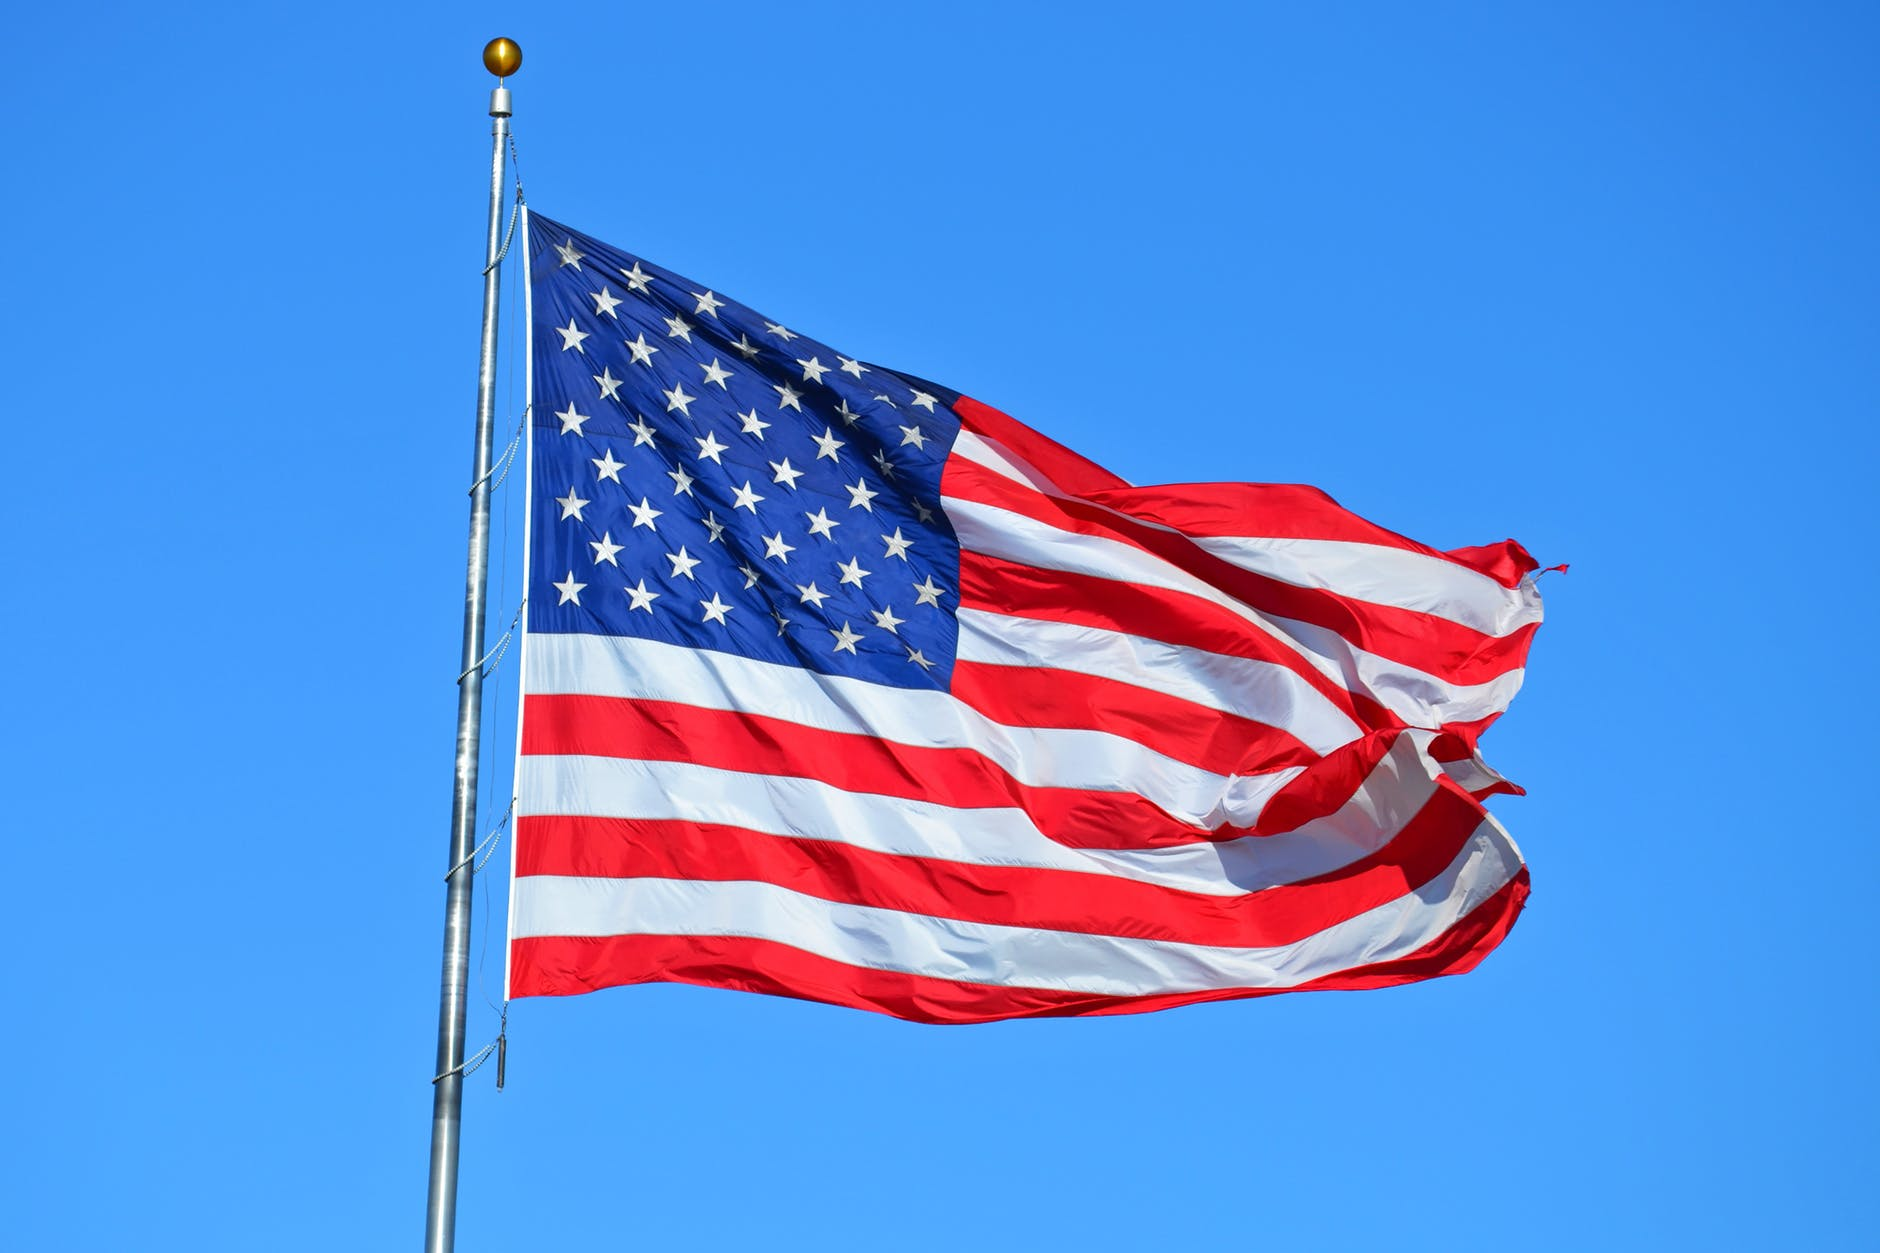 The American Flag-Flag Day is celebrated on June 14th and celebrates the adoption of the United States Flag.